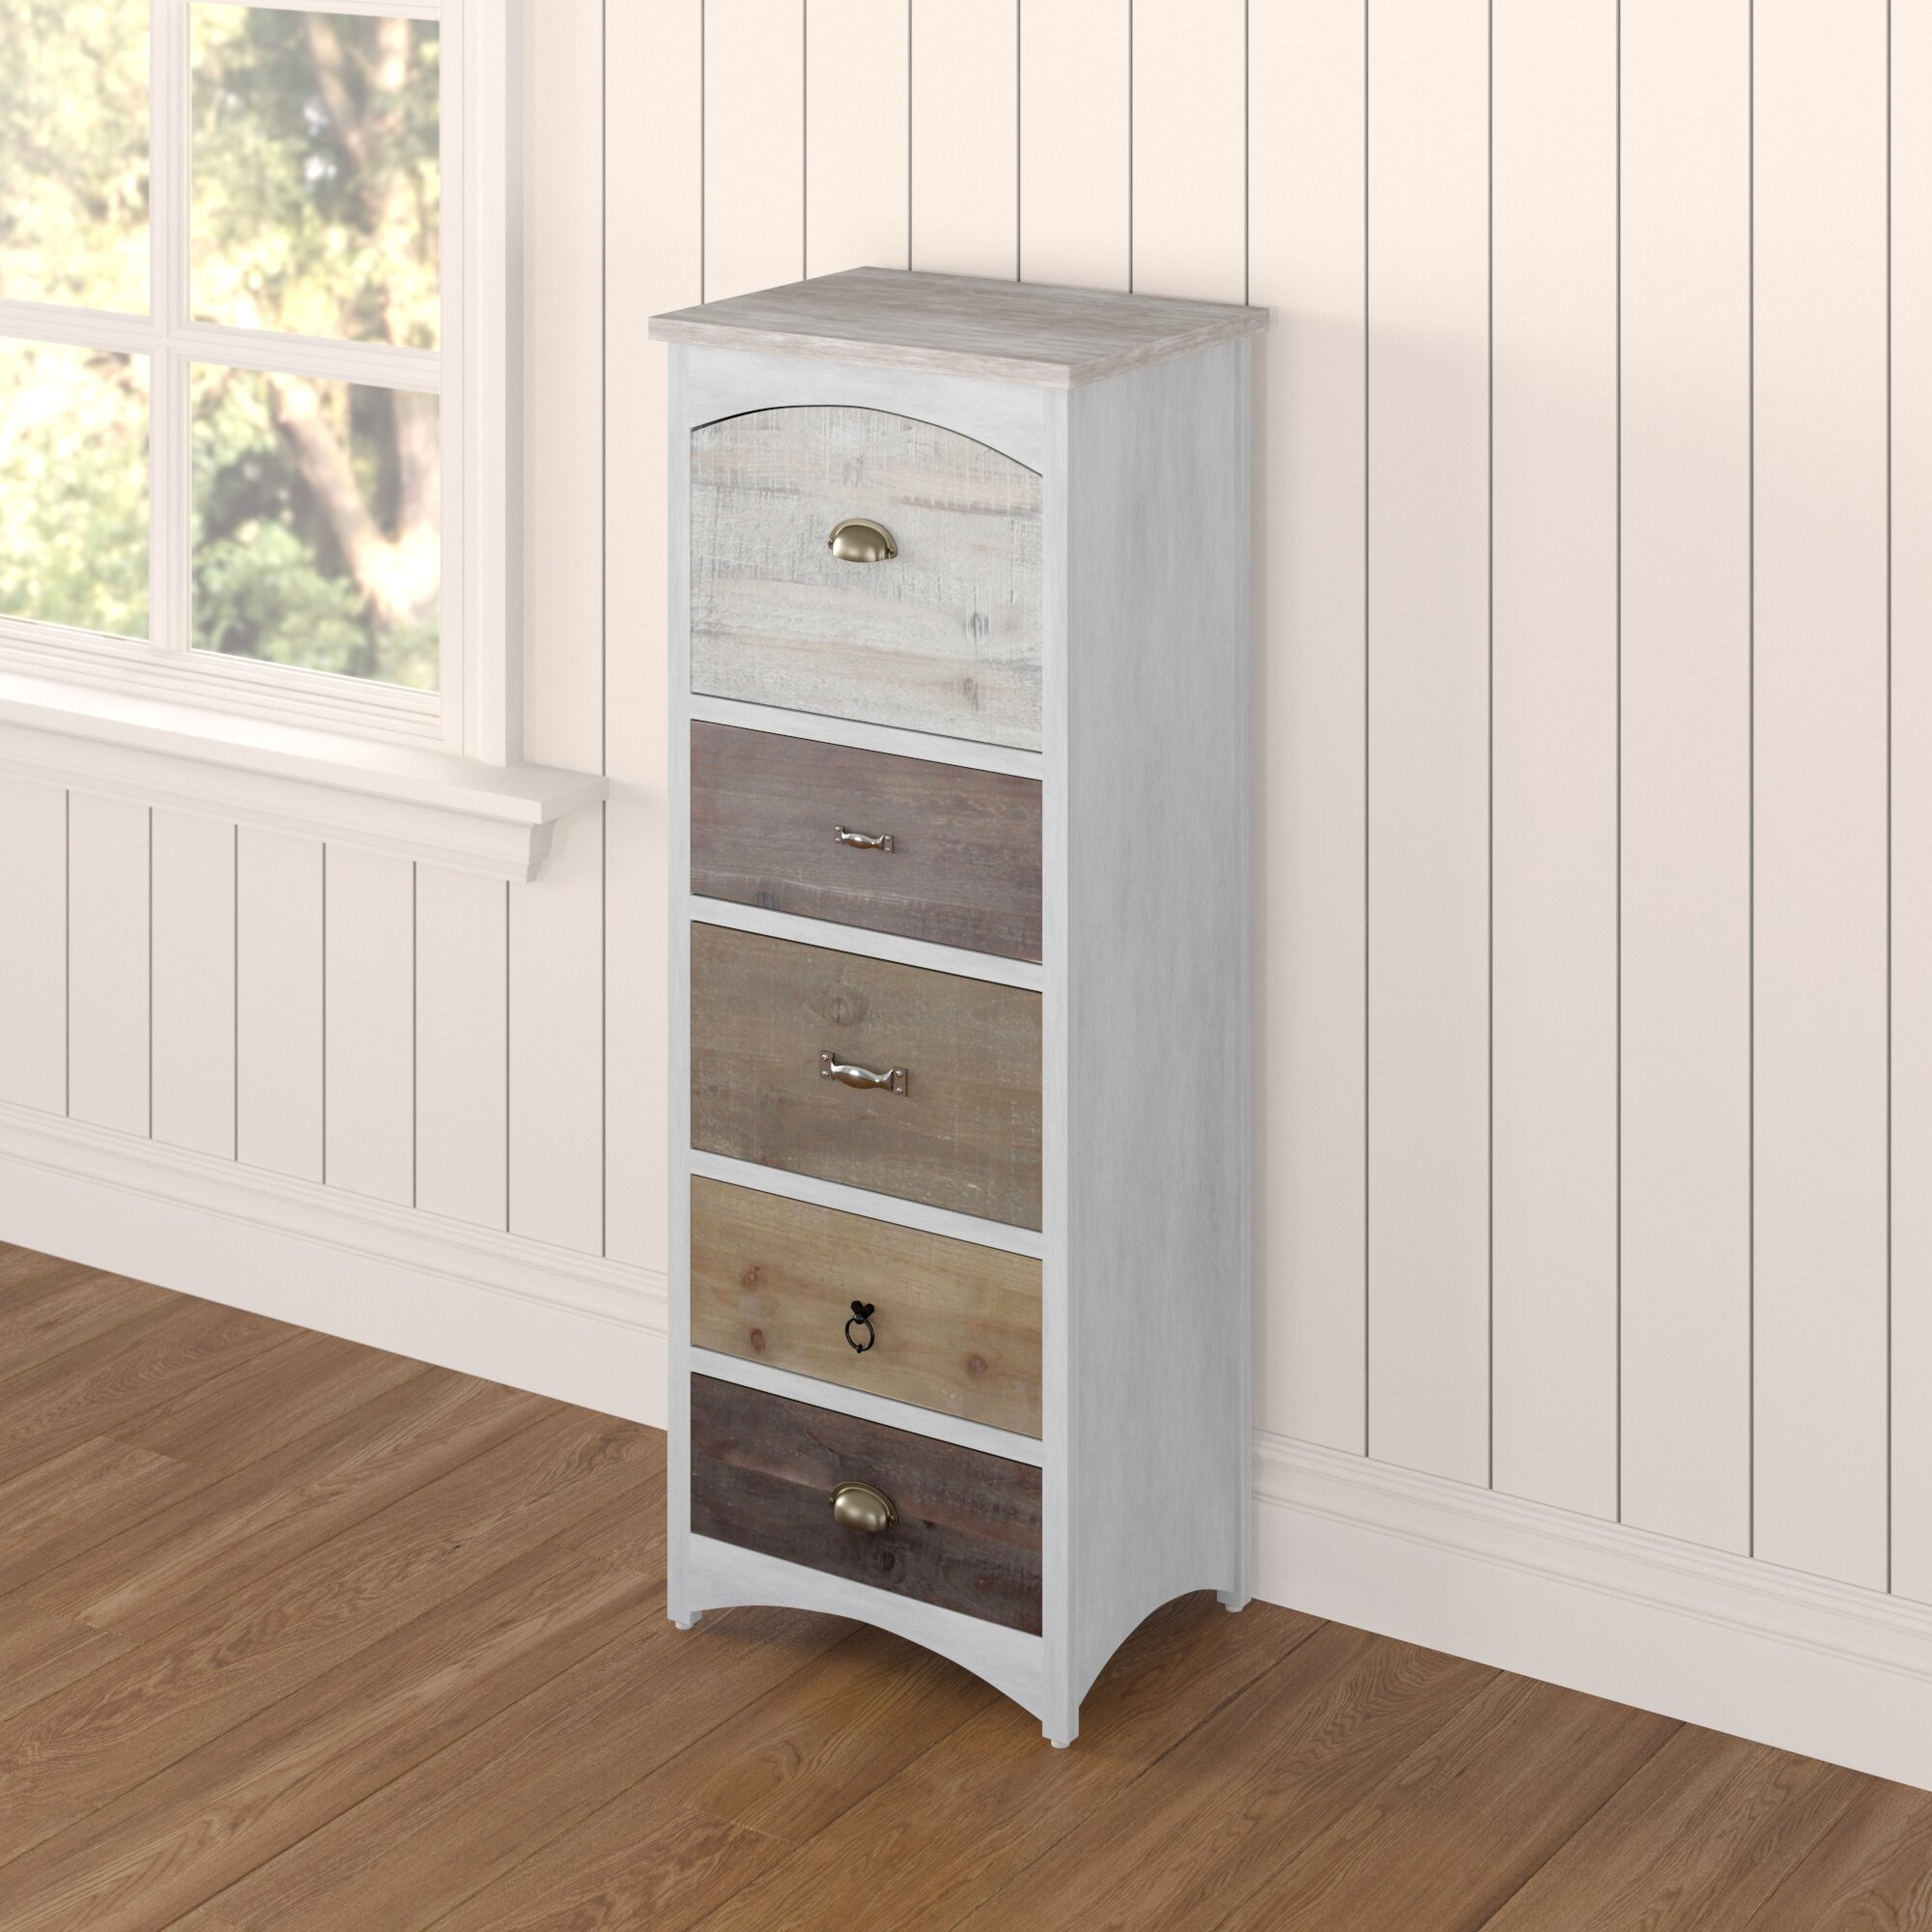 5 Drawer Narrow Chest of Drawers in White Slim Legs Soft Close